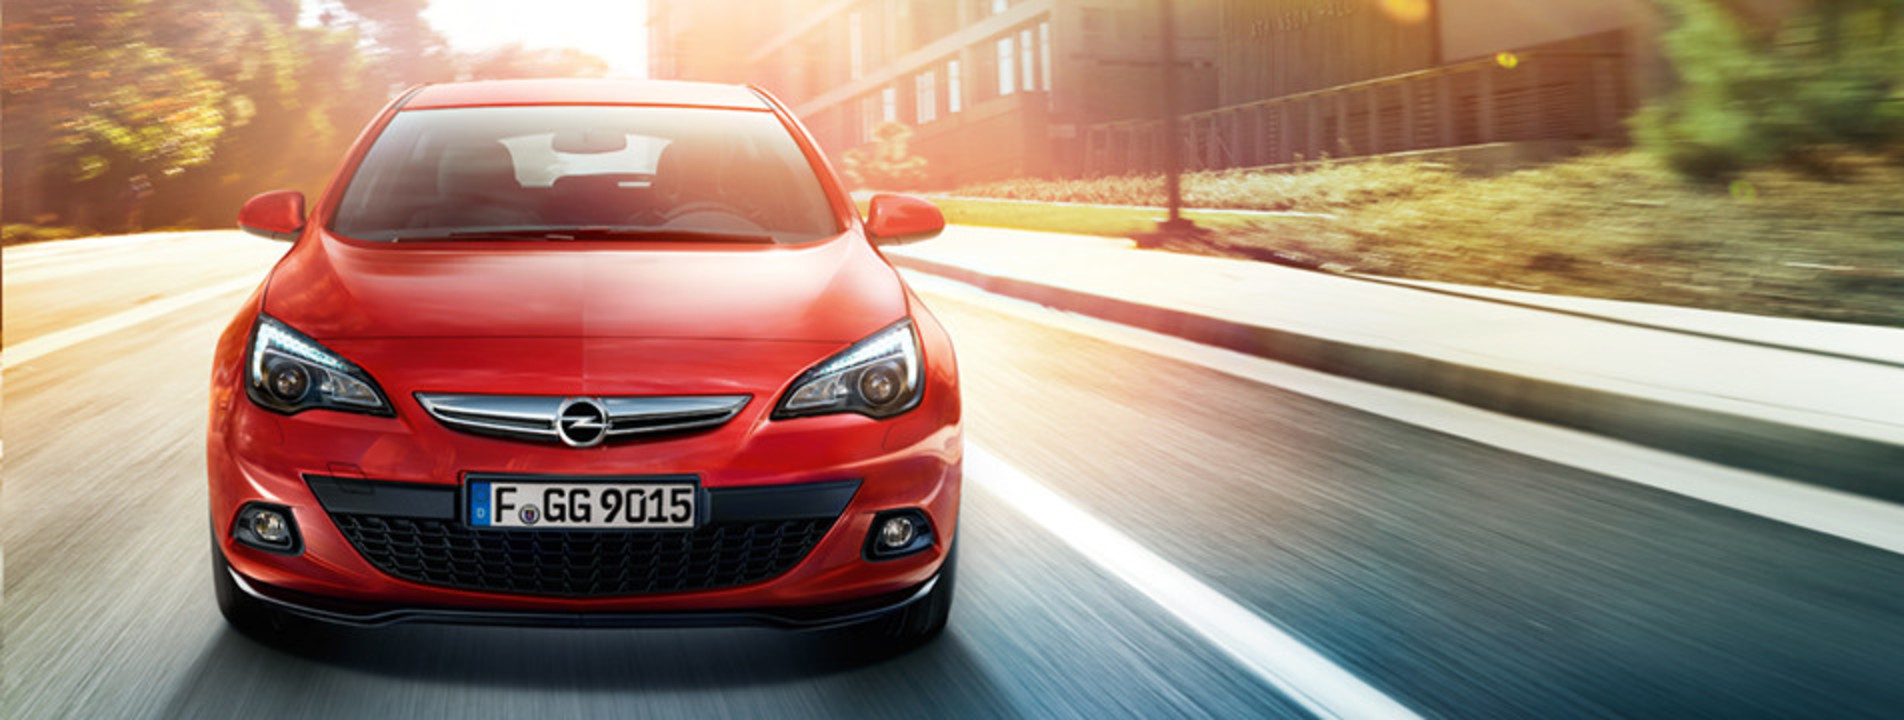 Opel Astra 20 GL. View Download Wallpaper. 952x360. Comments